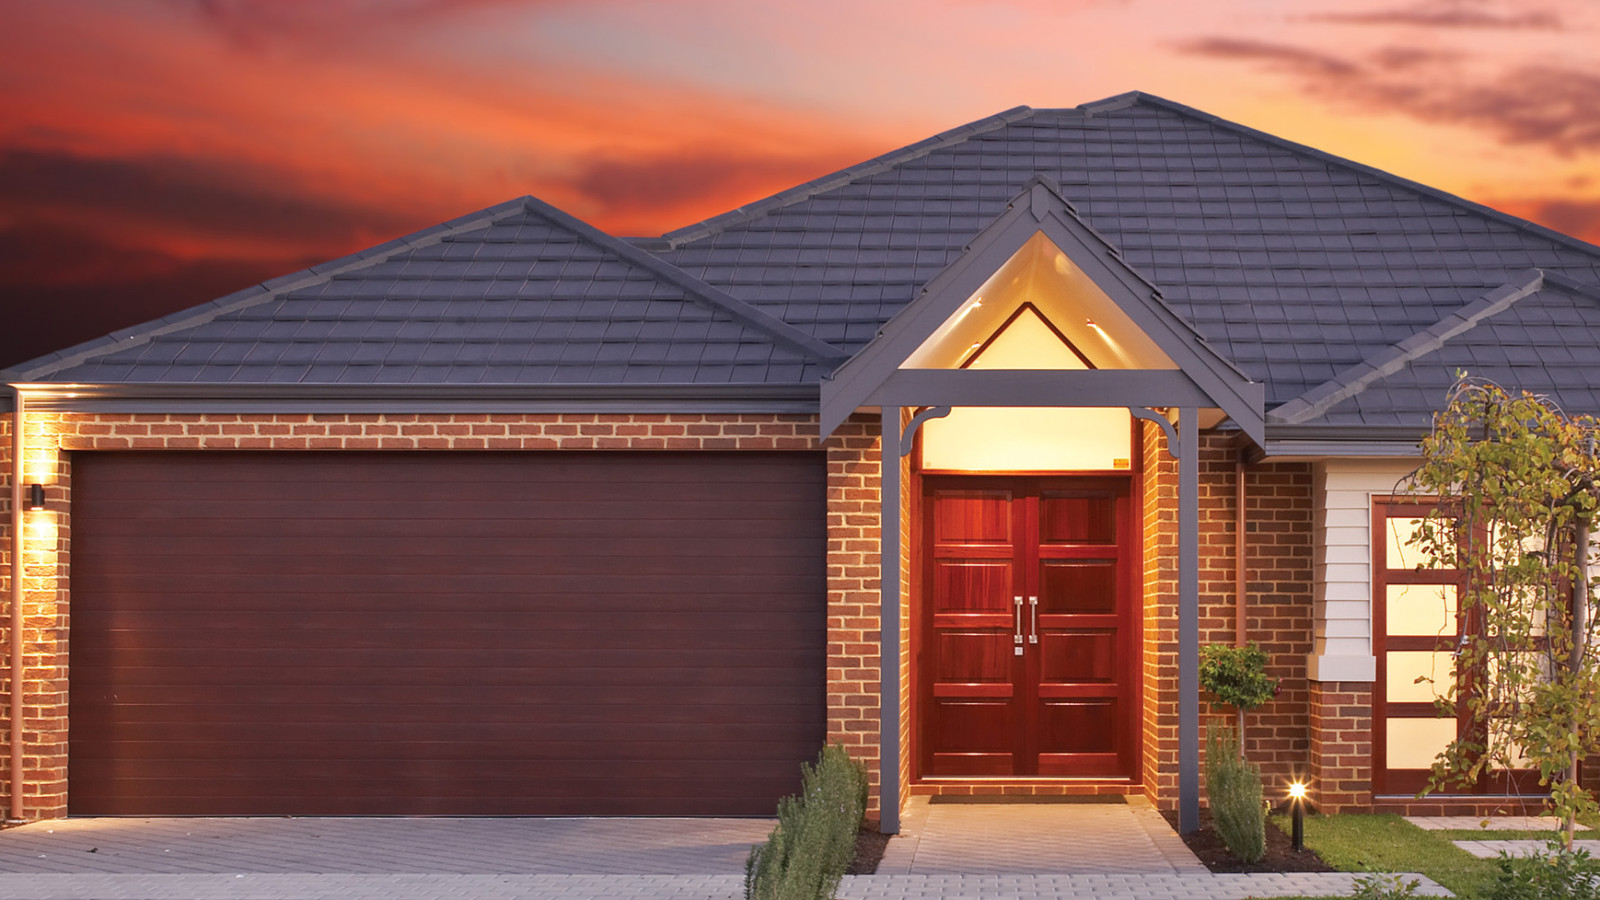 Quick and secure garage door repair and maintenance tricks you should know